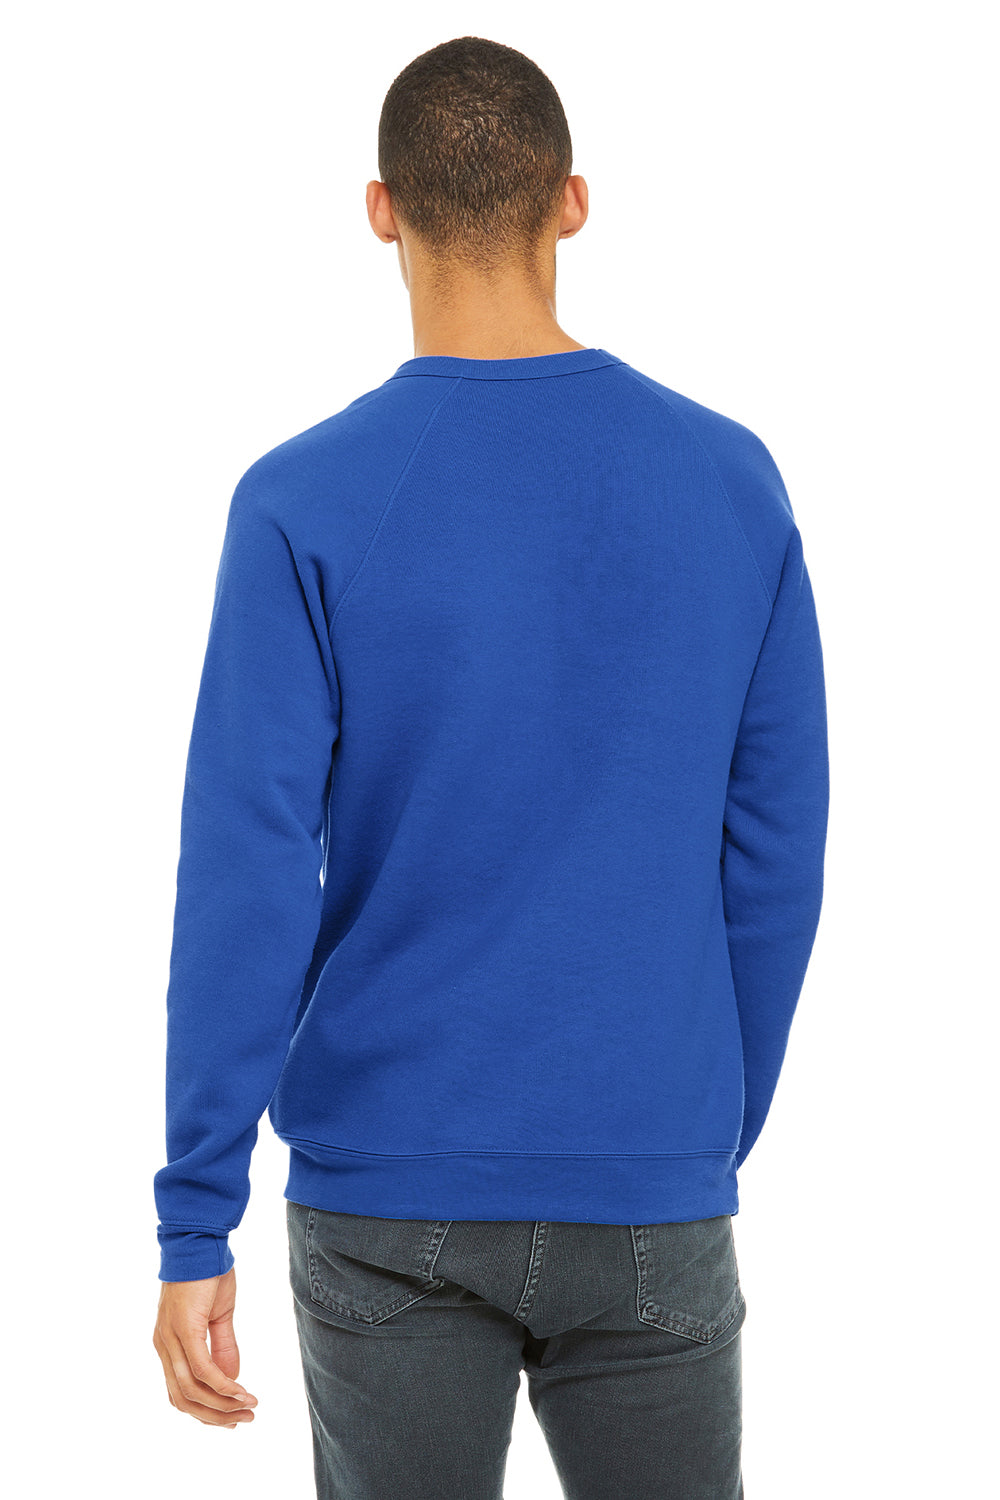 Bella + Canvas 3901 Mens Sponge Fleece Crewneck Sweatshirt Royal Blue Back